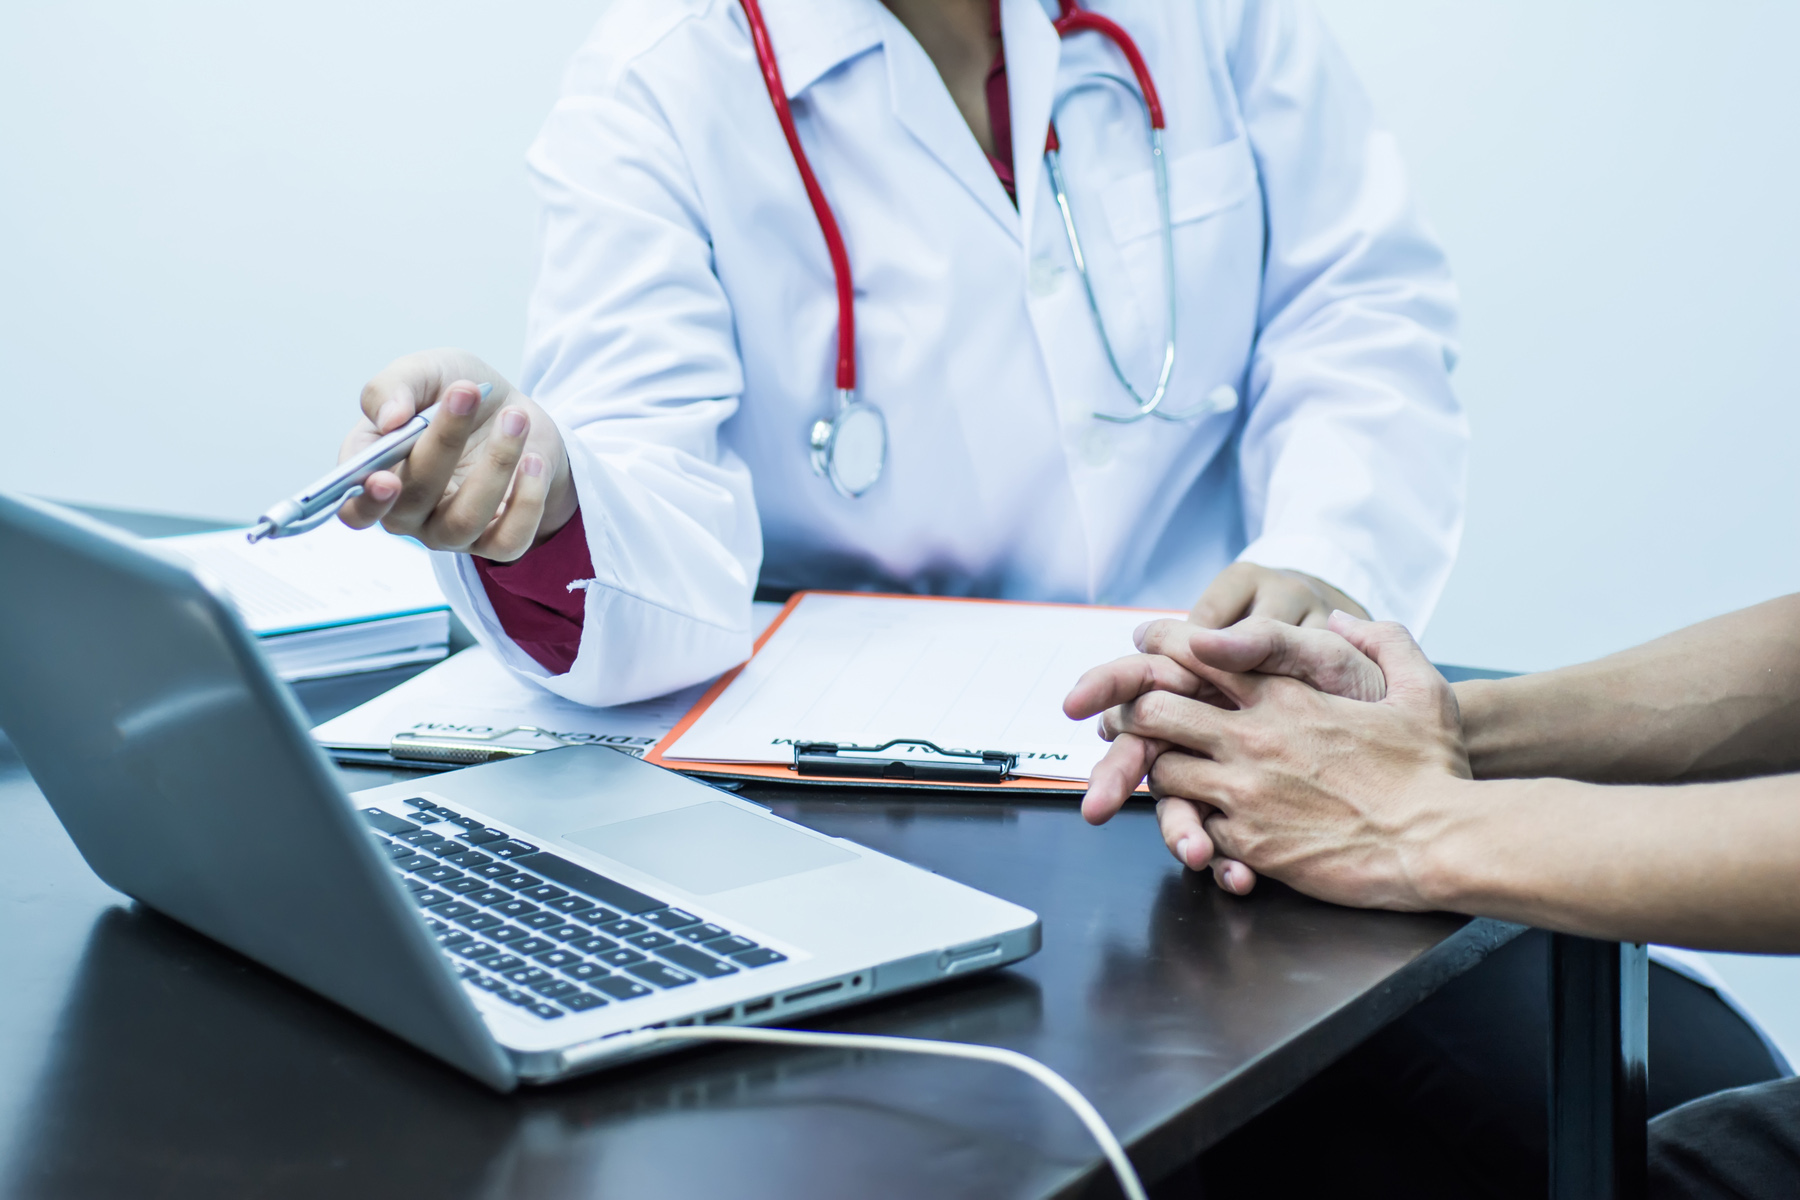 A doctor and a patient looking at a laptop